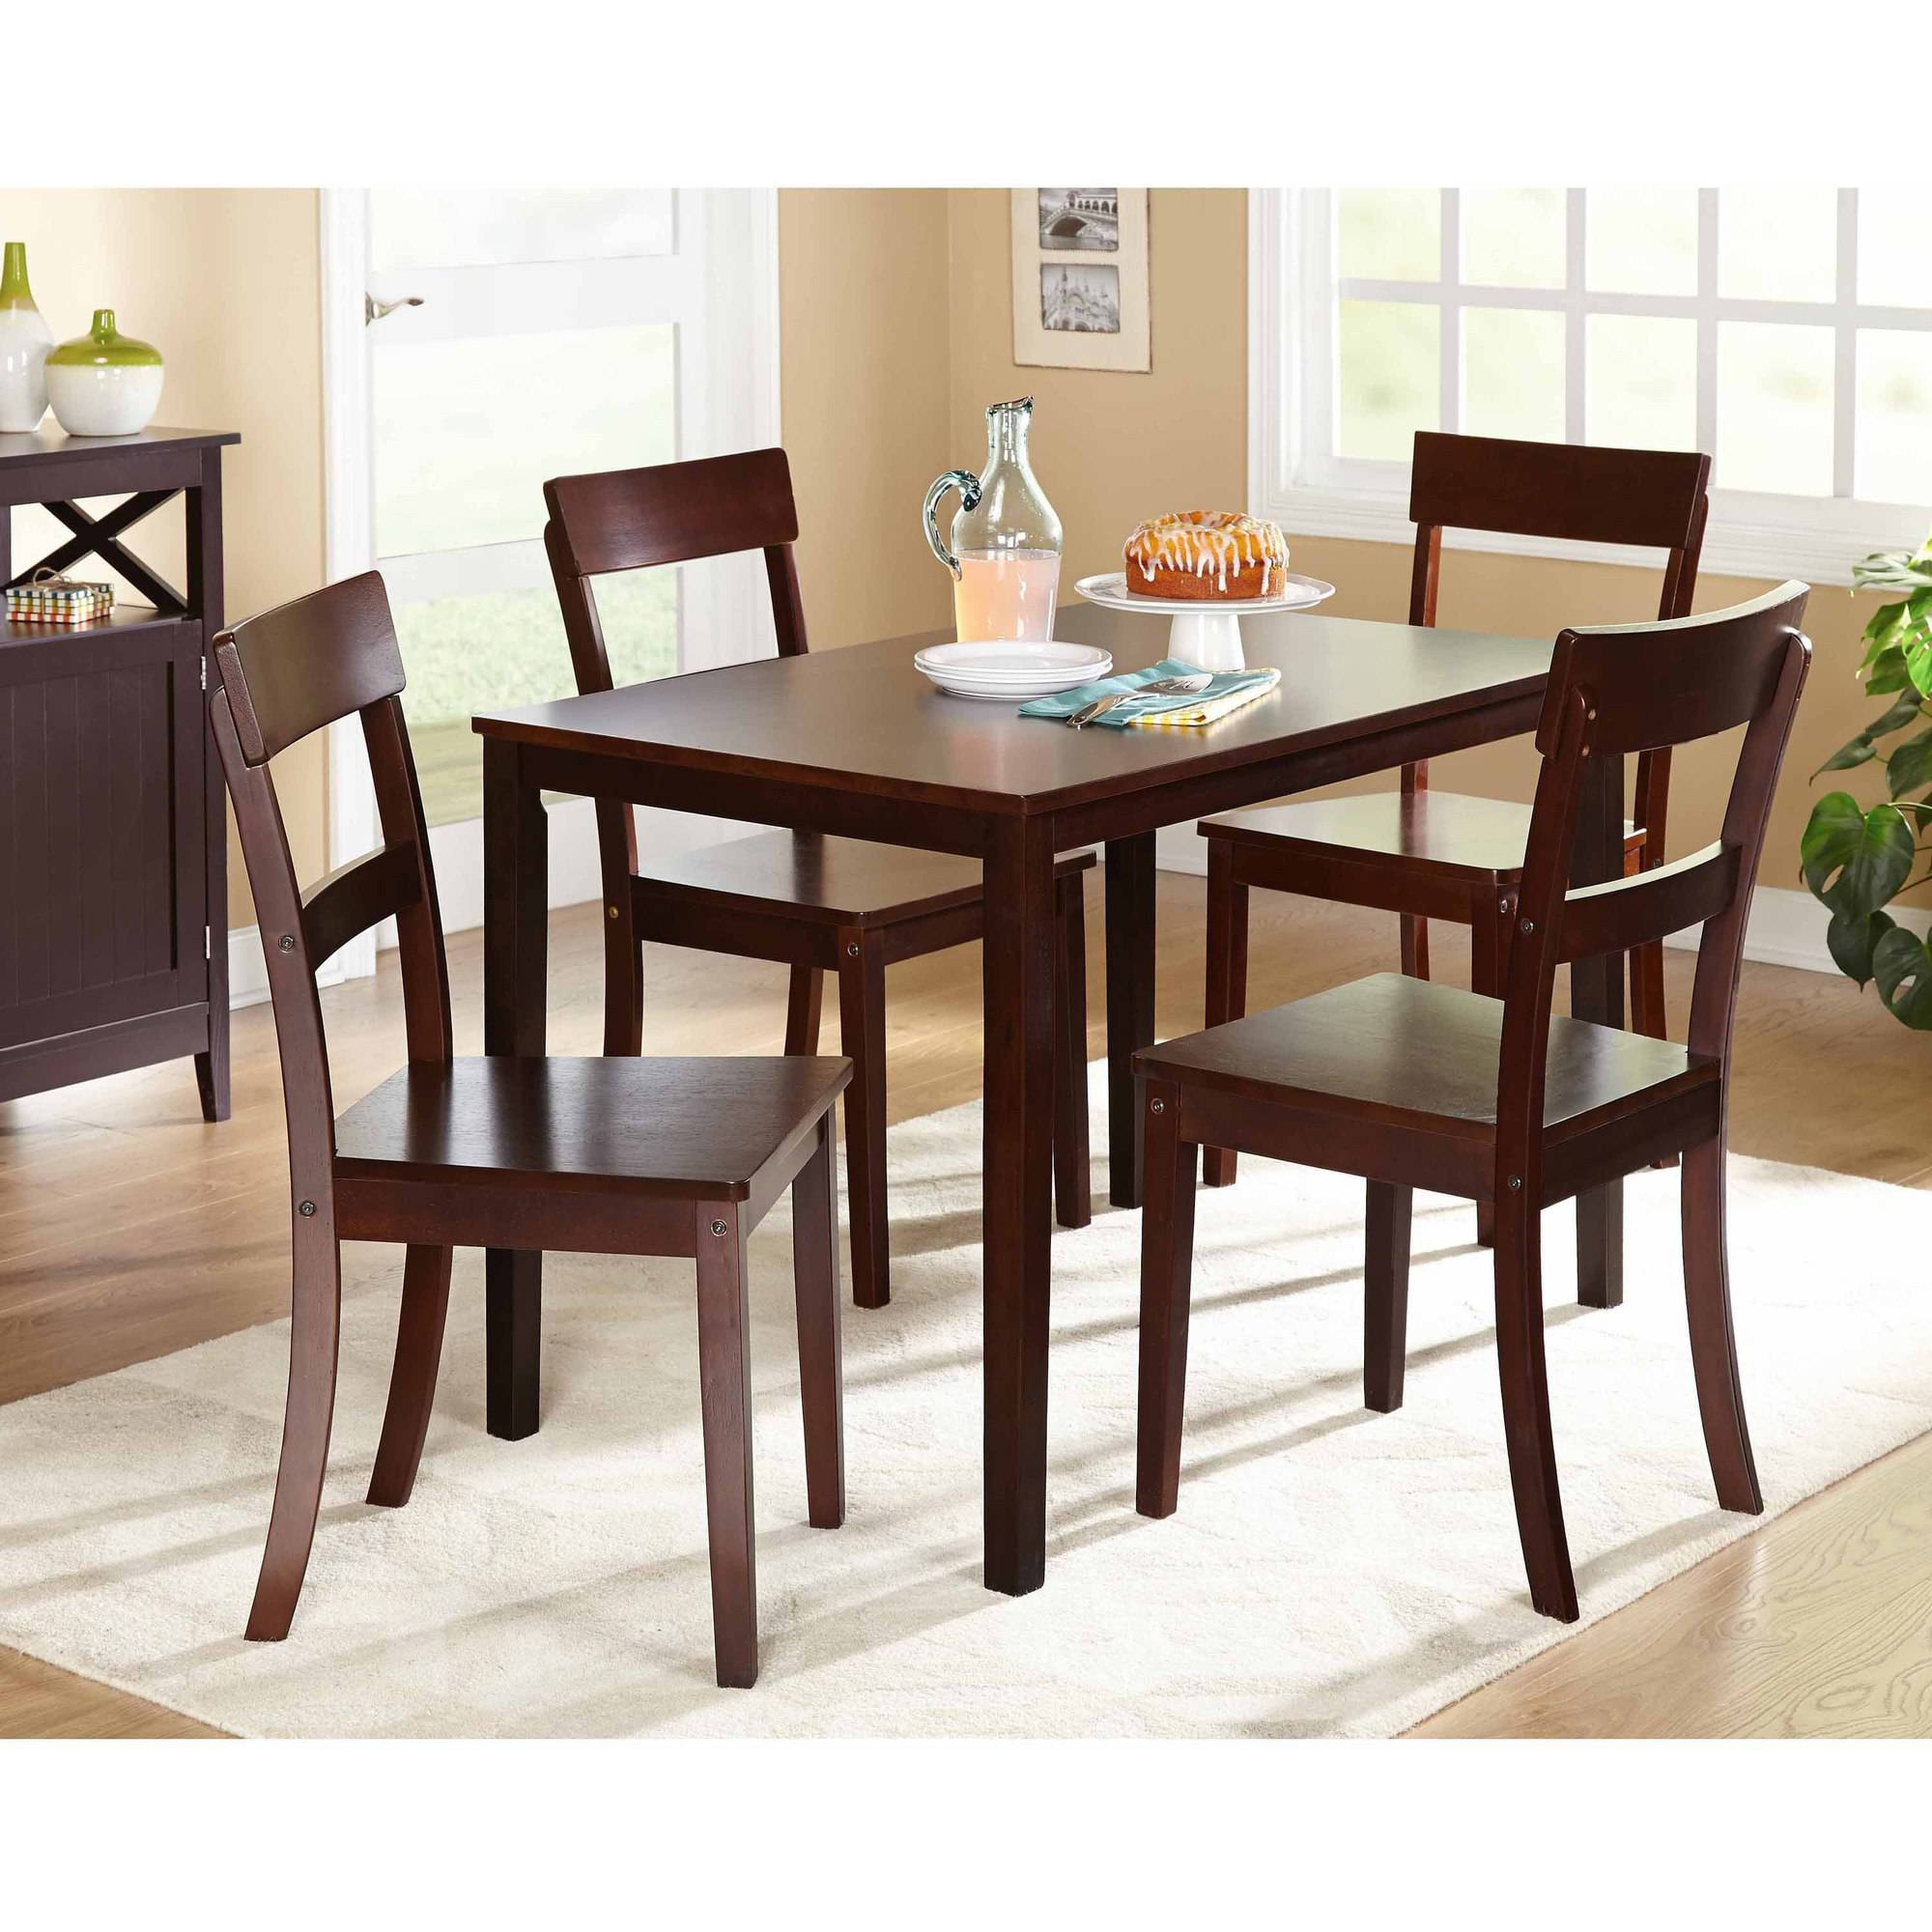 beverly 5-piece dining set, multiple finishes - walmart